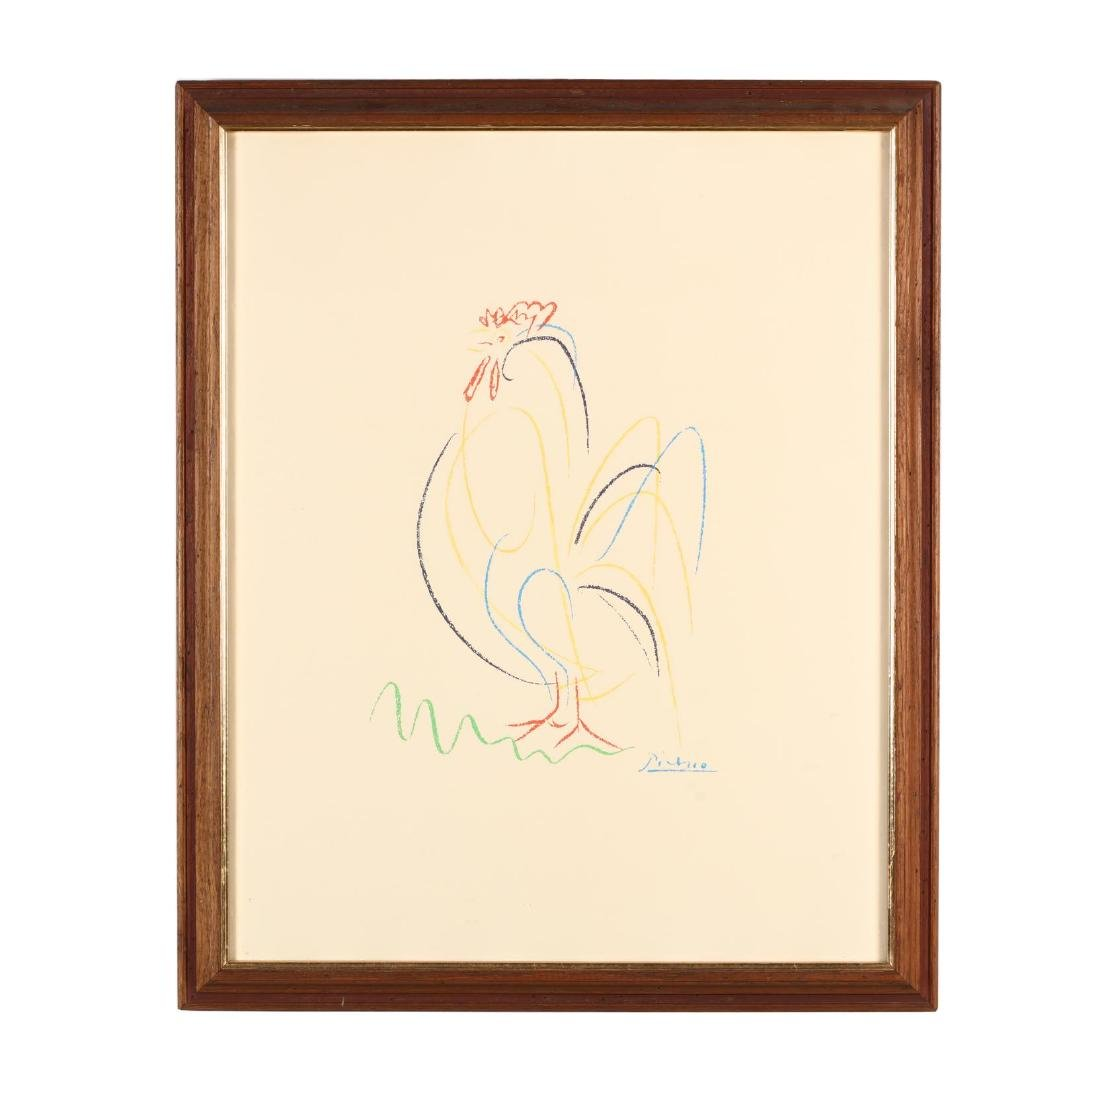 after Pablo Picasso (Spanish, 1881-1973), Rooster